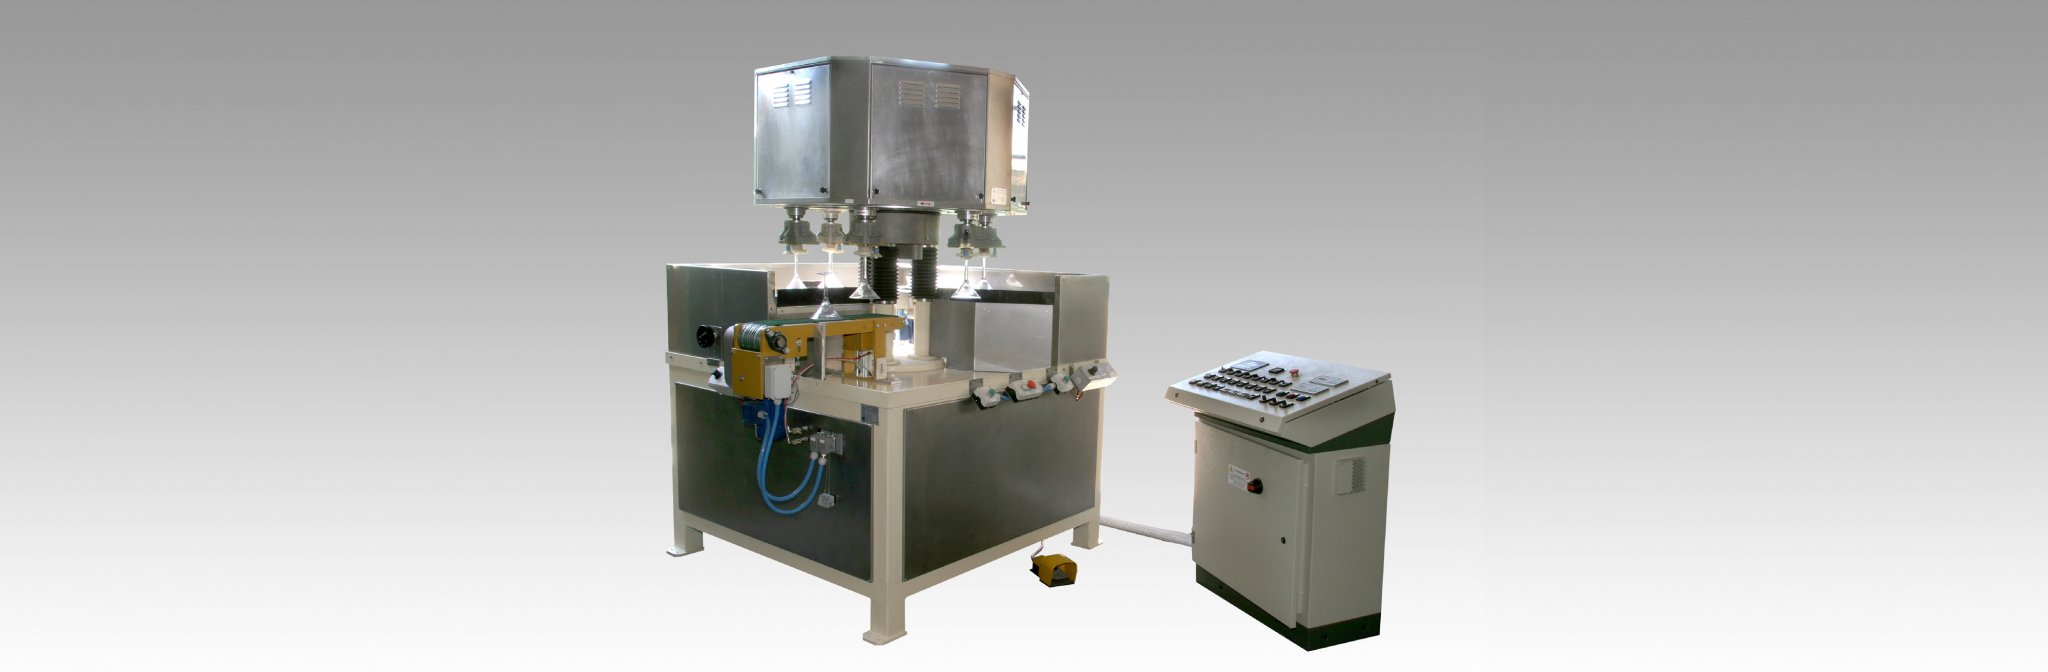 Transfer machines for glass processing.